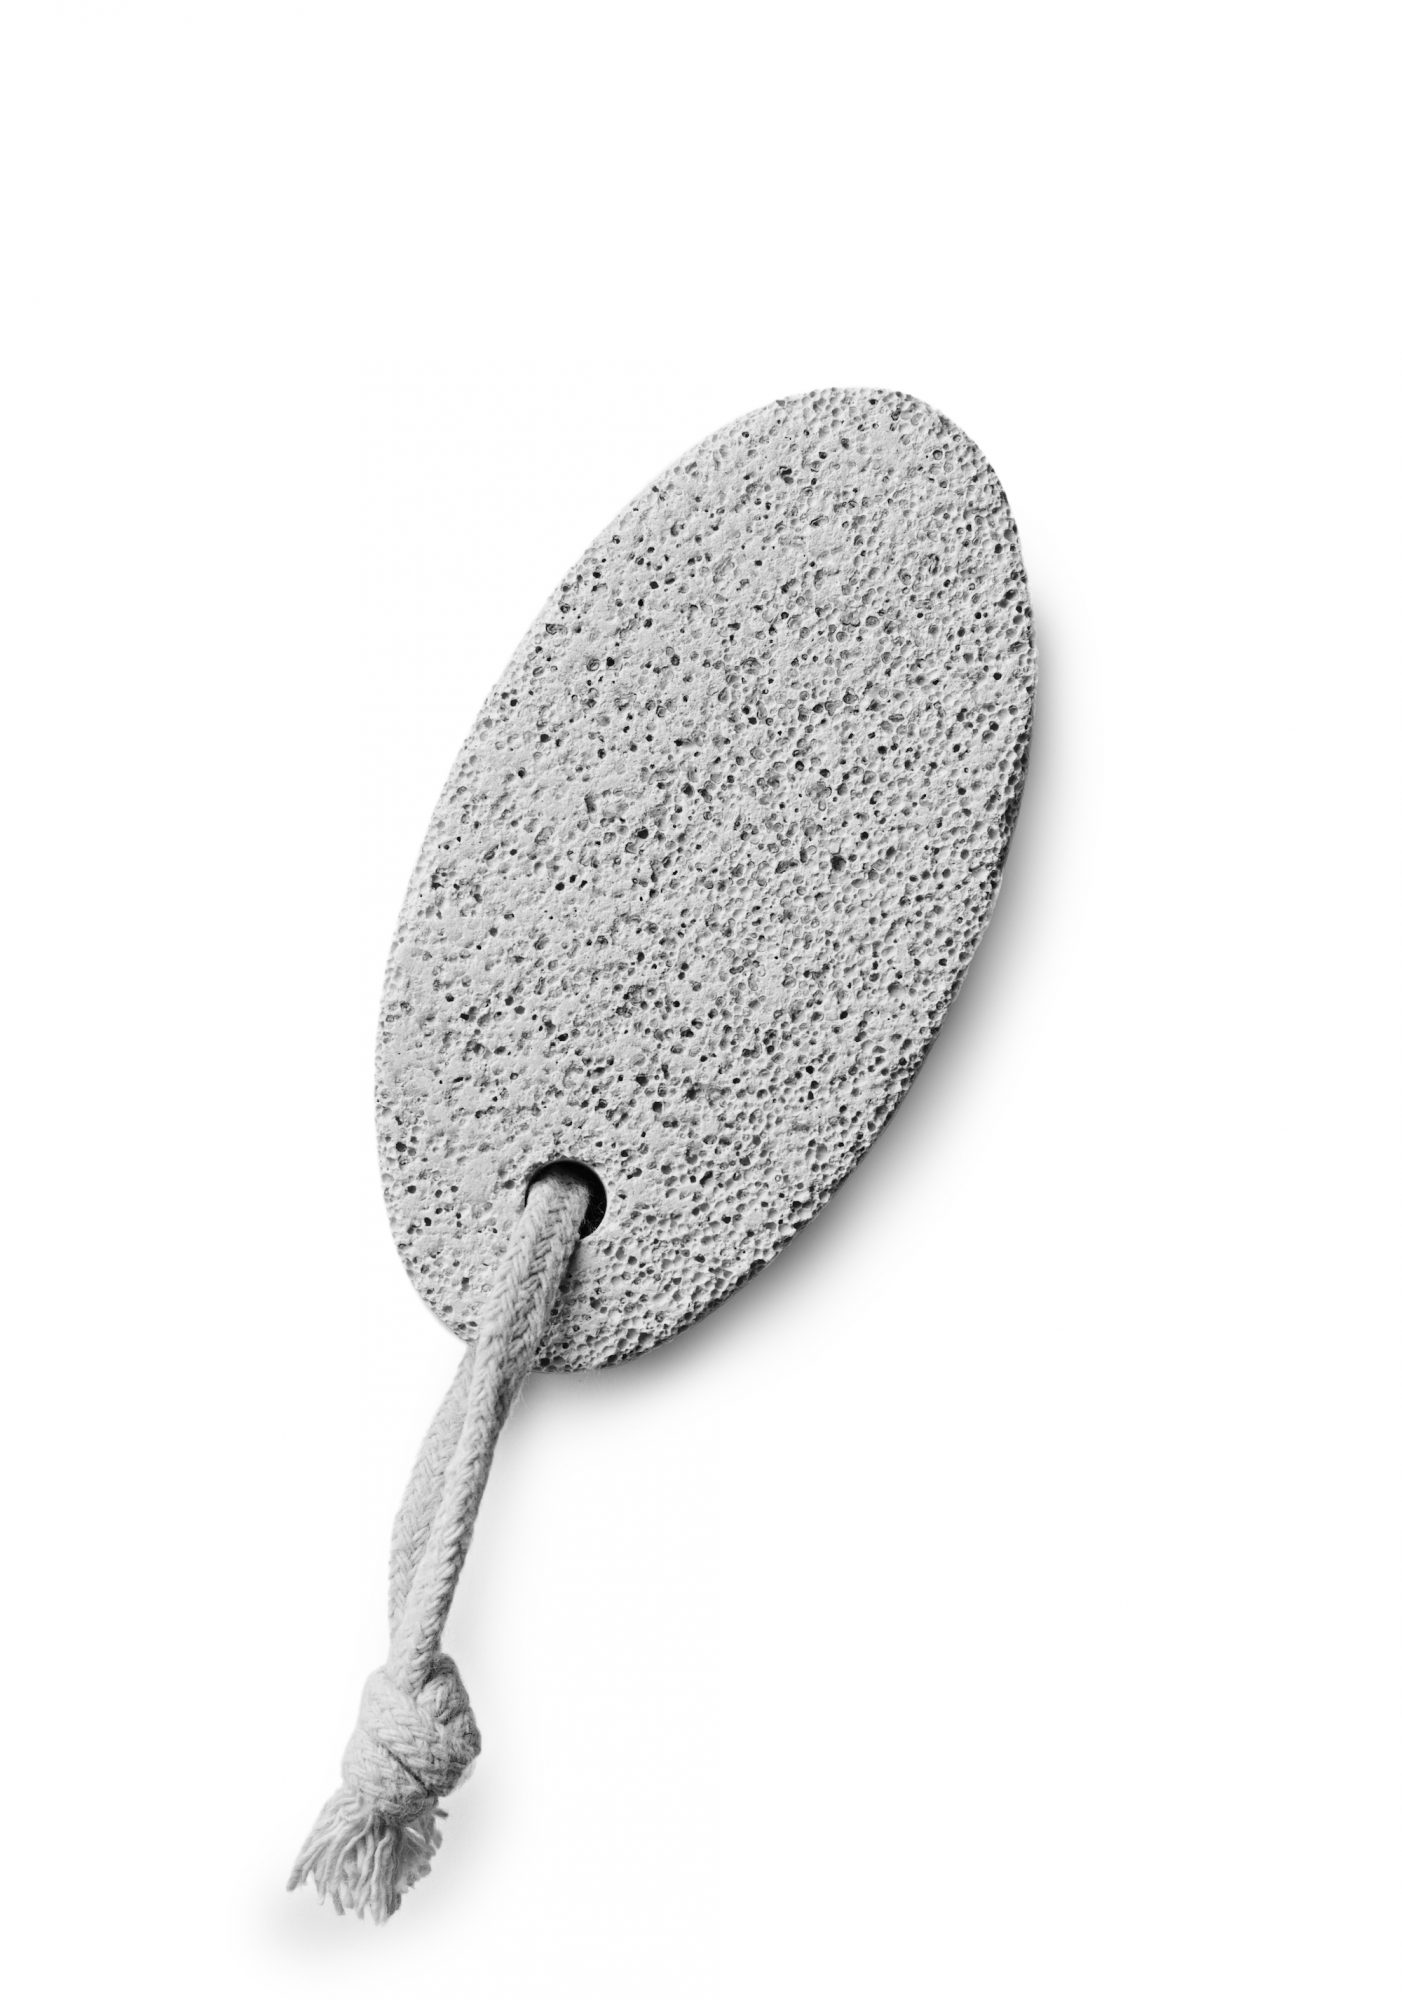 Professional Cleaners Secrets, Pumice Stone